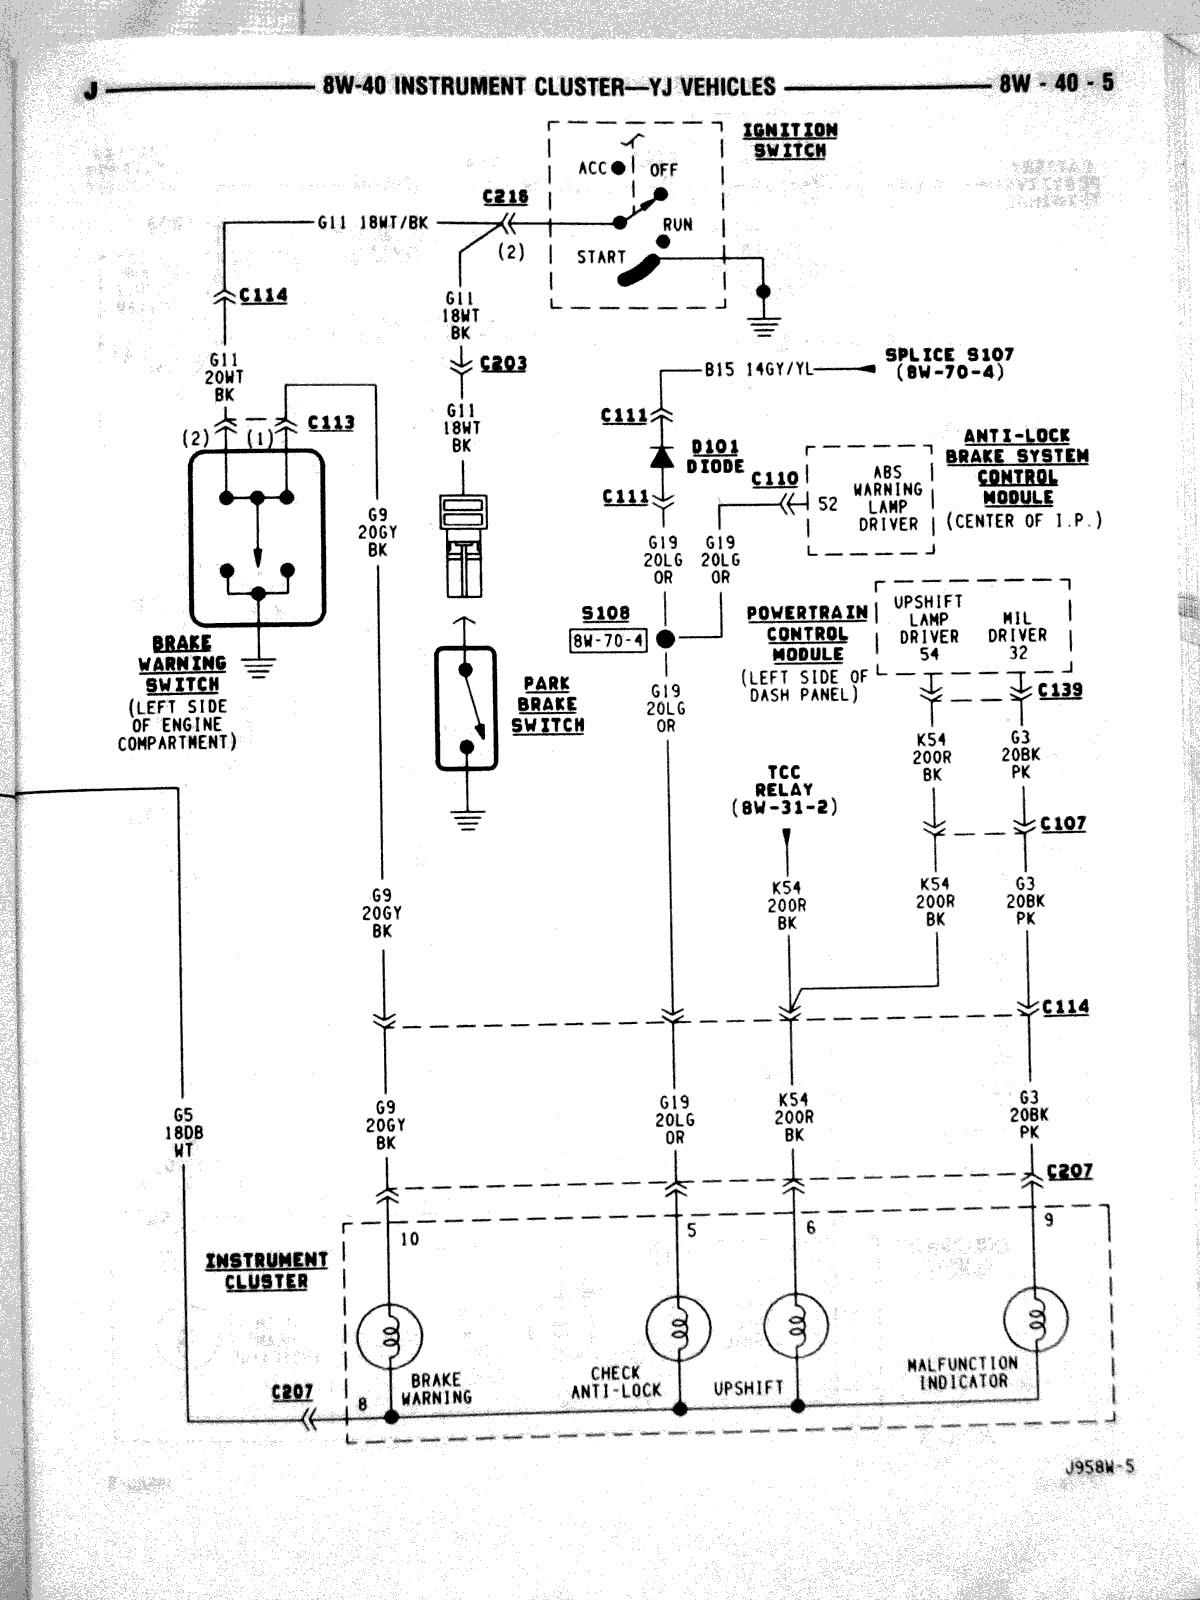 jeep wrangler exhaust diagram furthermore 1991 jeep wrangler yj on Jeep Wrangler Wiring Diagram